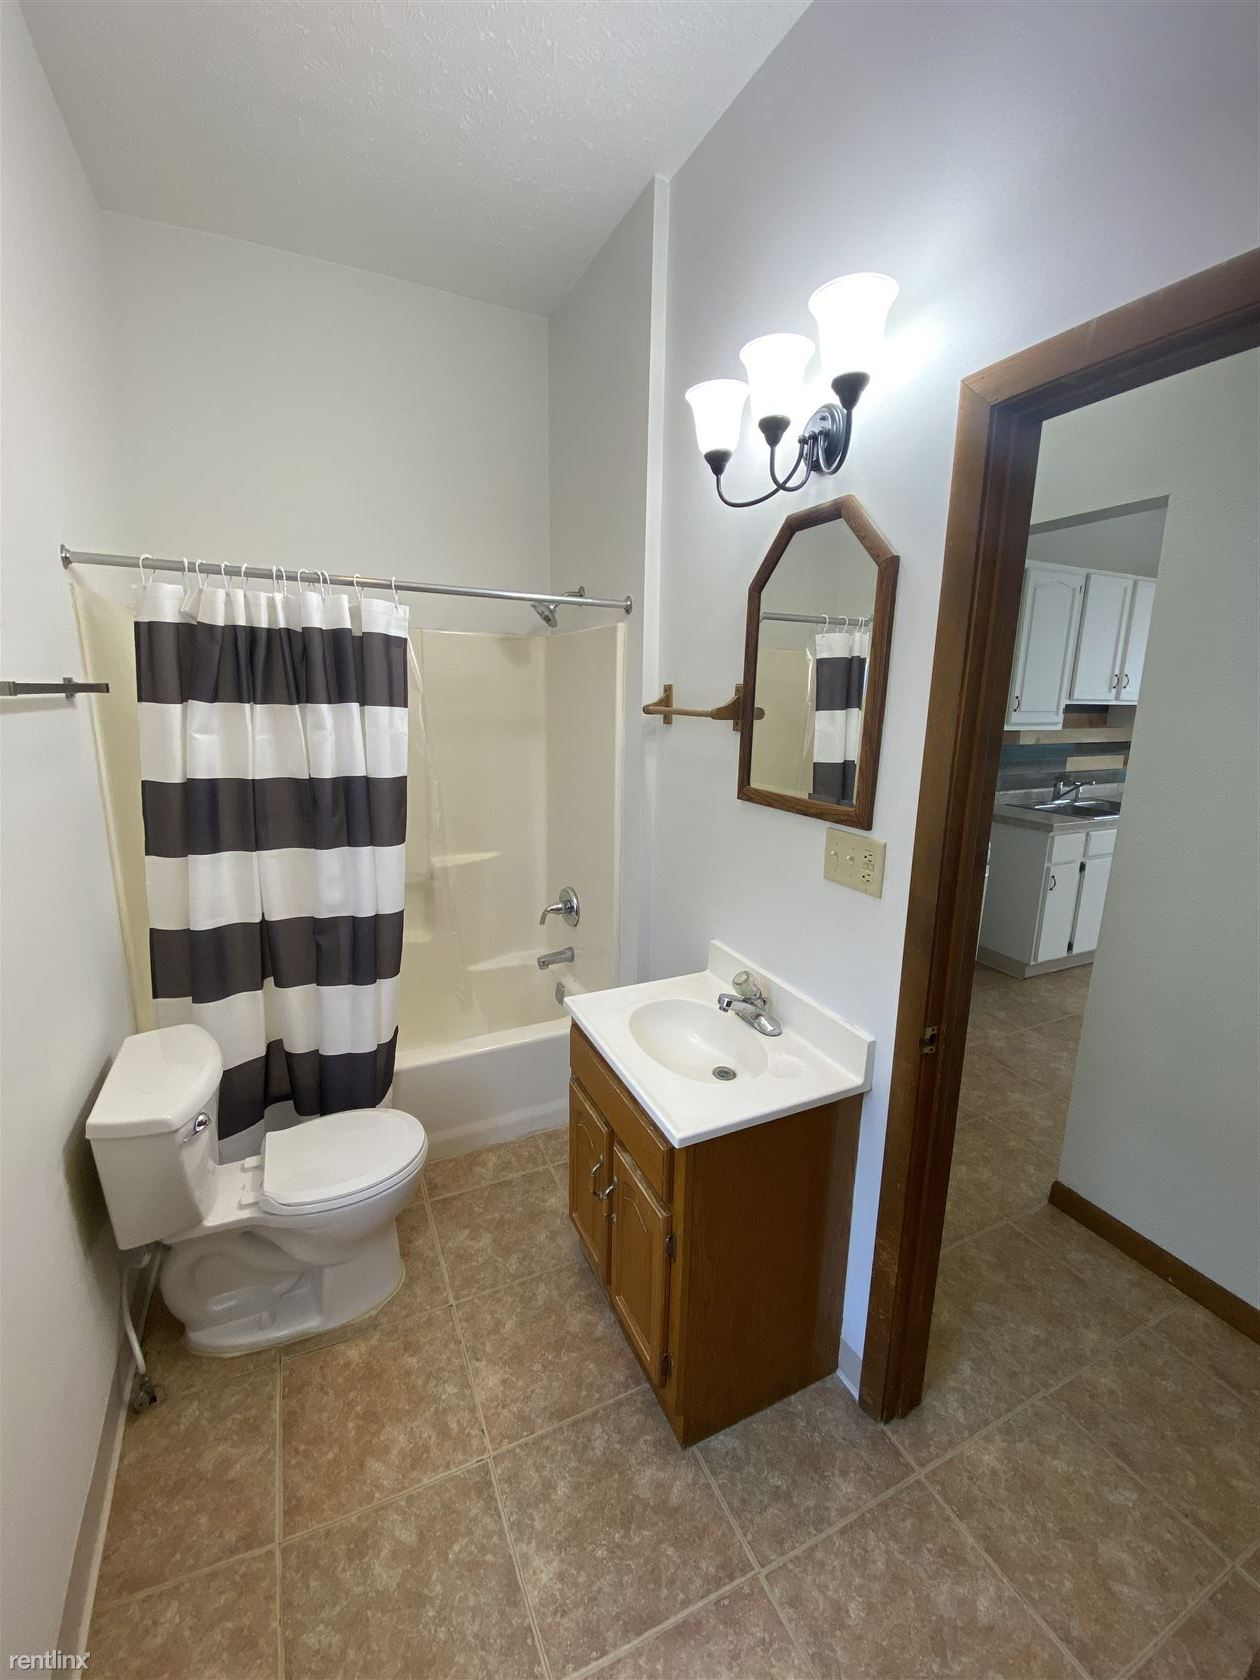 514 Rush St Apt A, South Bend, IN - 800 USD/ month